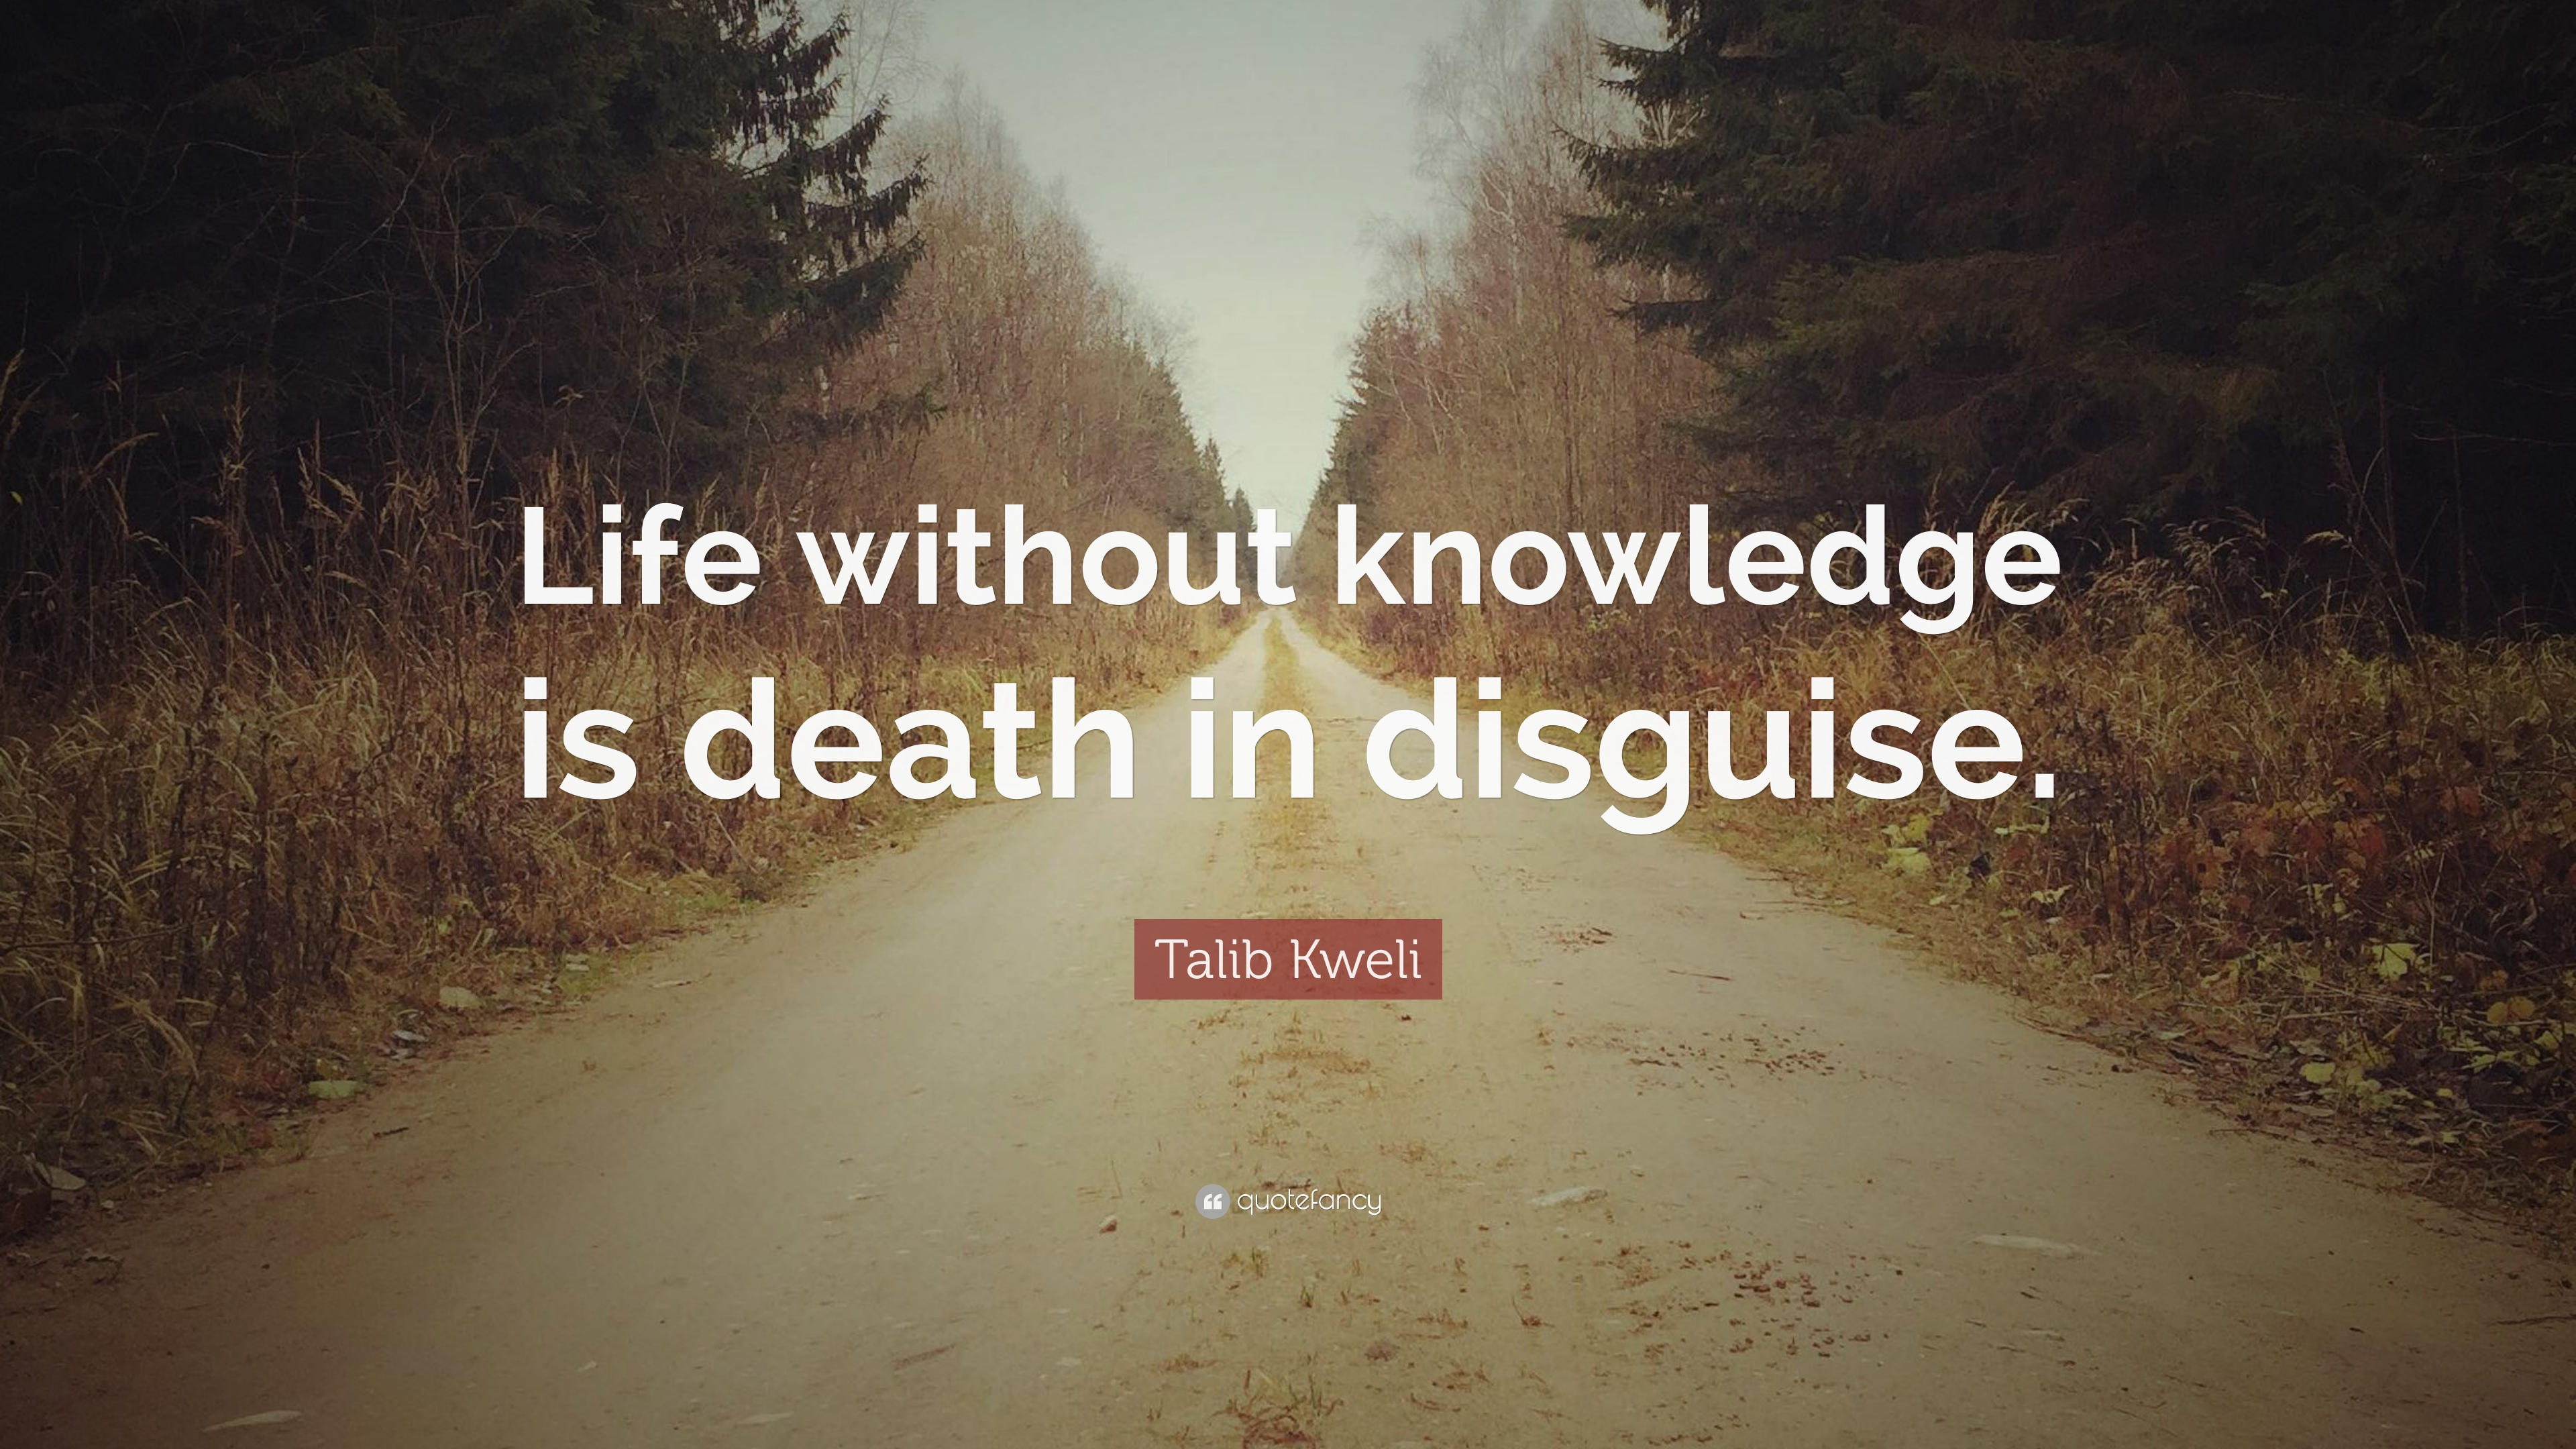 Talib Kweli Quote: U201cLife Without Knowledge Is Death In Disguise.u201d